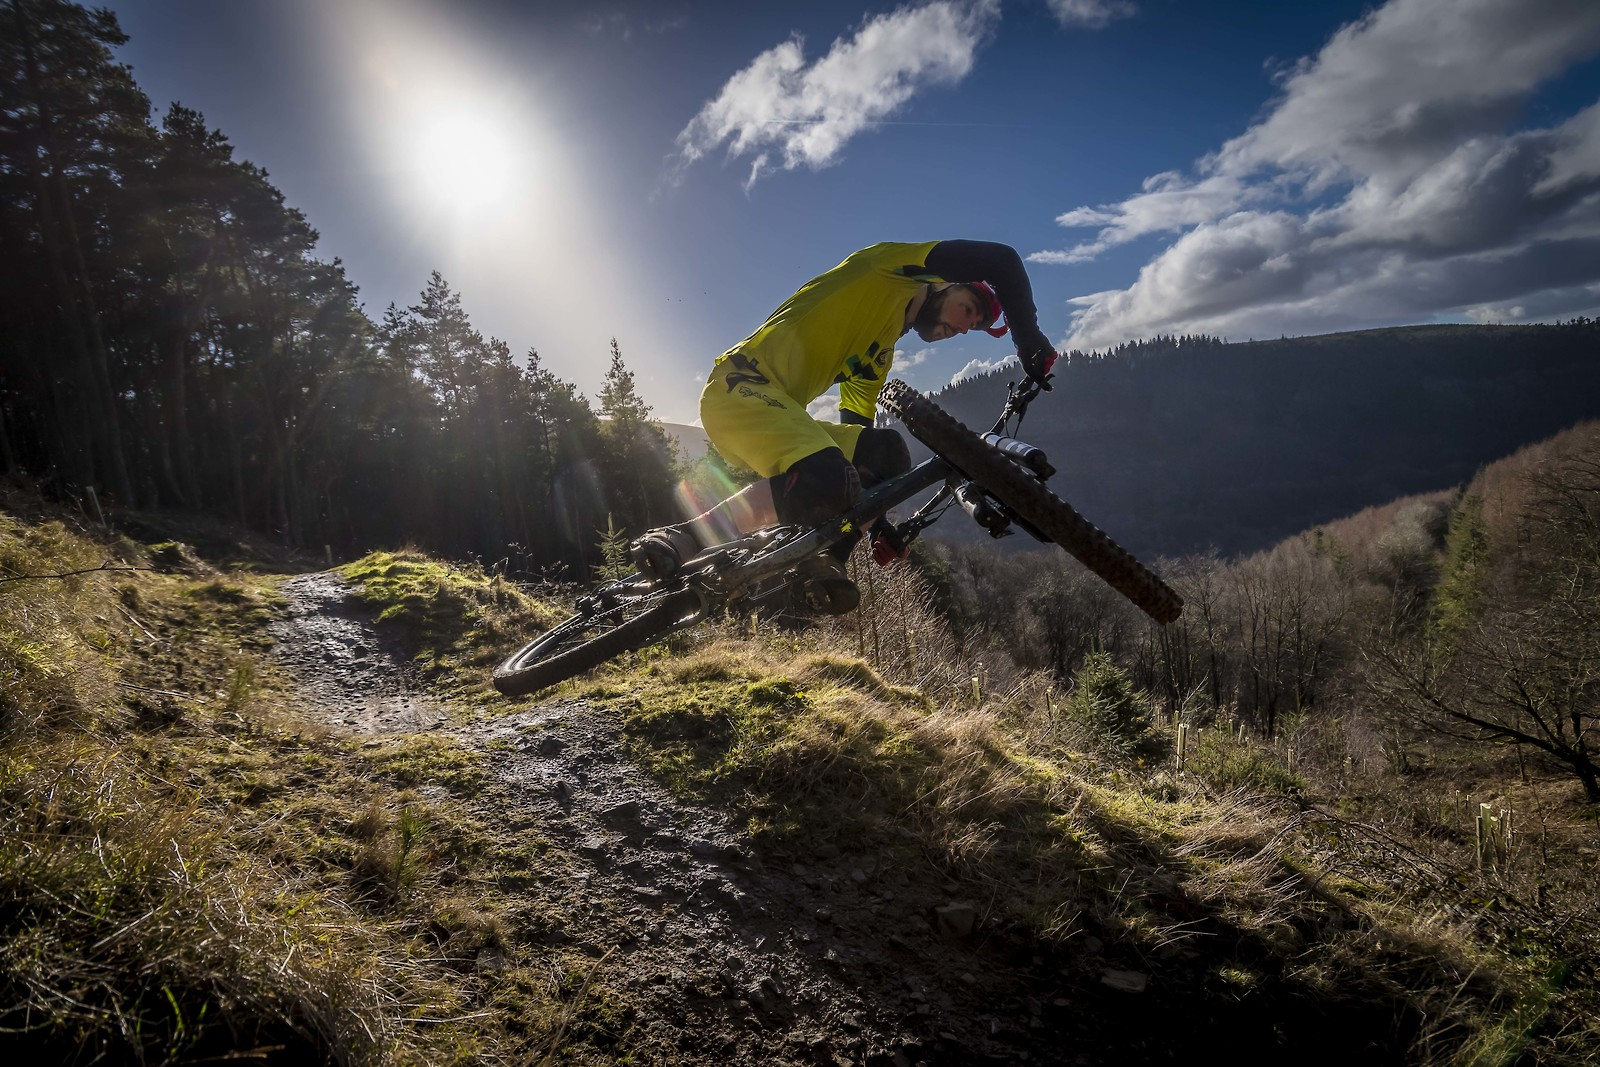 DSC0210 - robbarkerimages2017 - Mountain Biking Pictures - Vital MTB